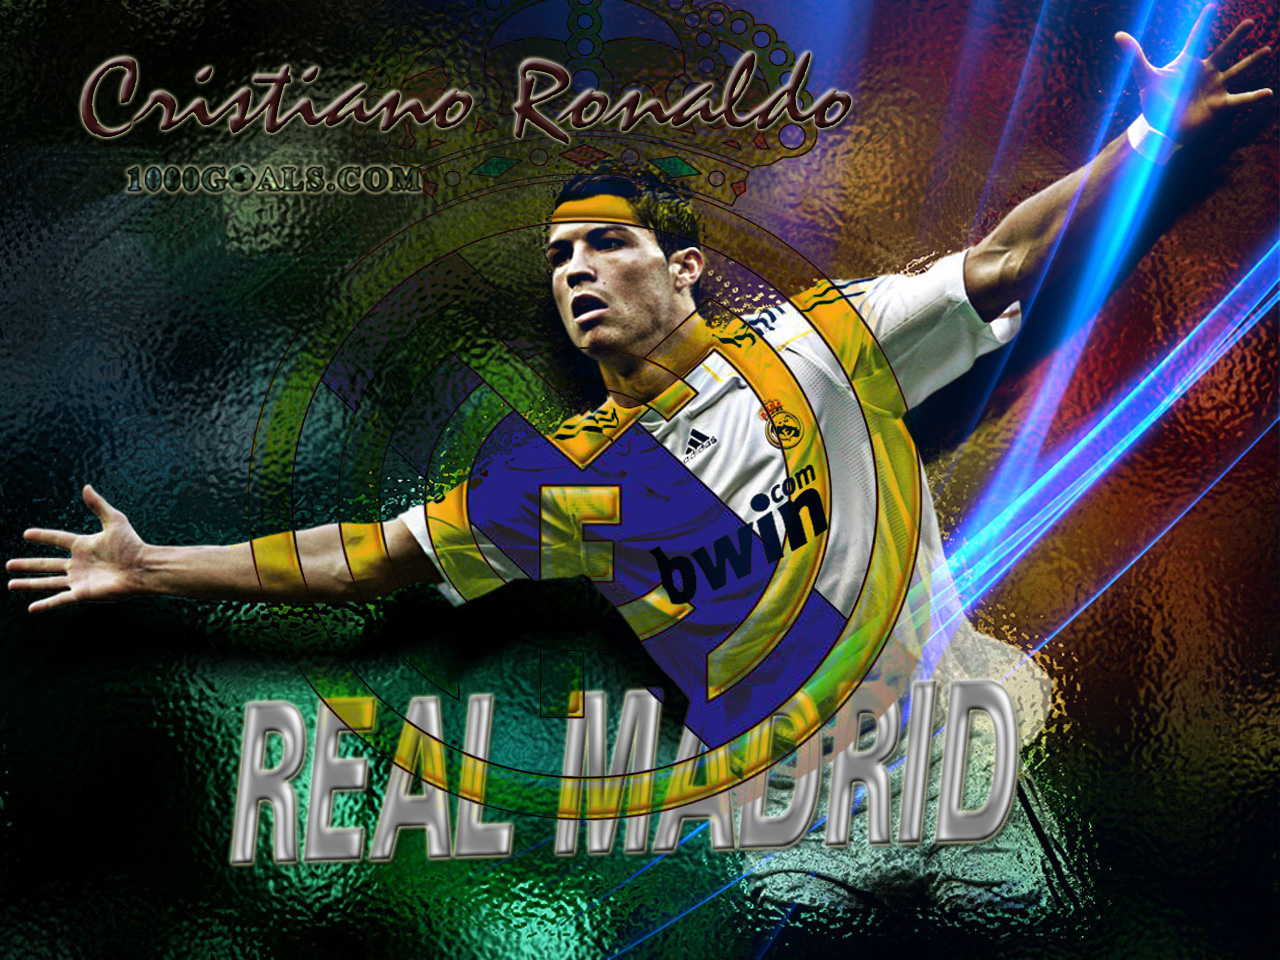 Description: Cristiano Ronaldo Real madrid Wallpaper is Wallapers for